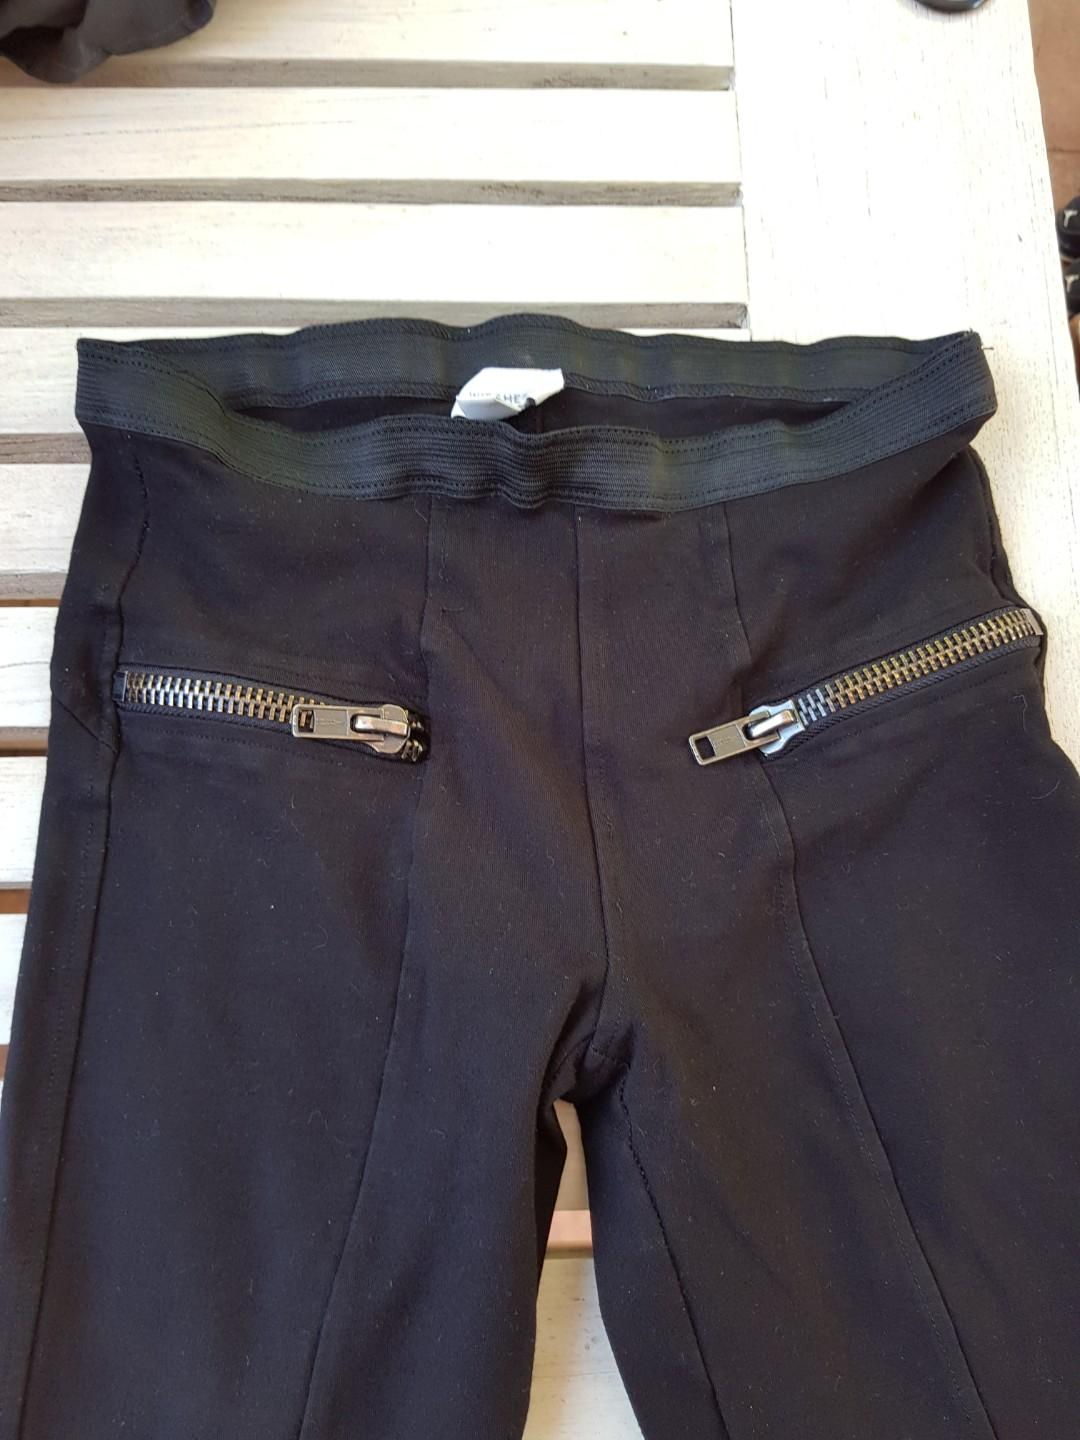 Witchery ponte black pant with zip detail. Size 8.